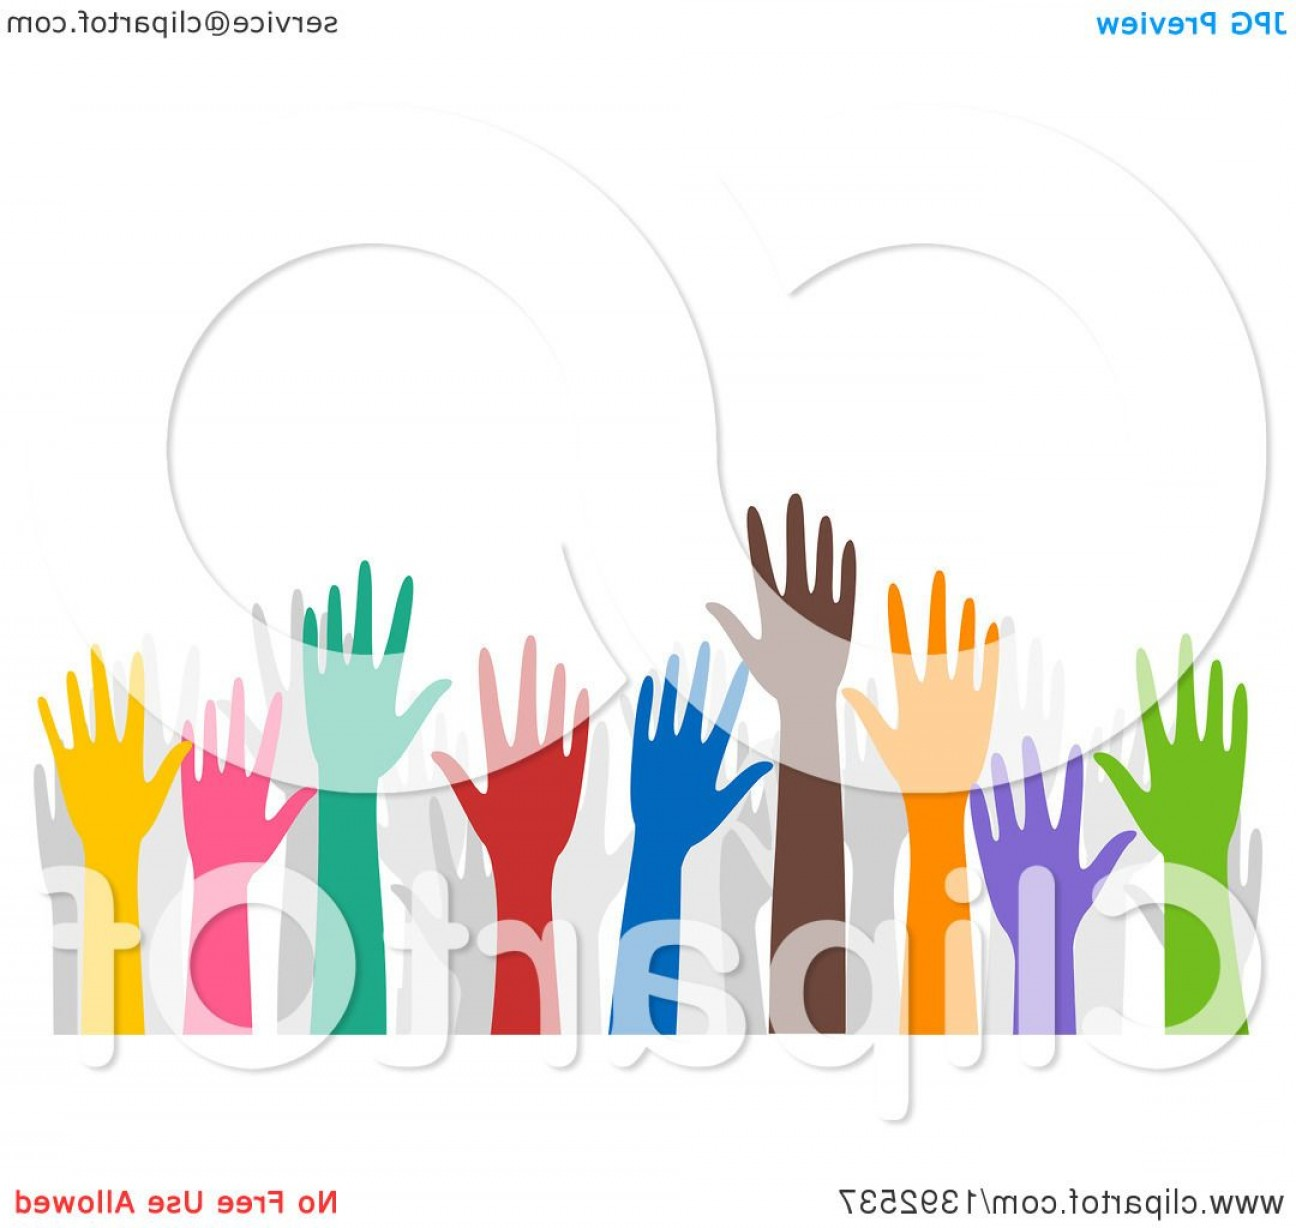 Volunteer Clip Art Vector: Grayscale Group Of Urban Residents Crossing Their Arms And Holding Hands Around Their Town